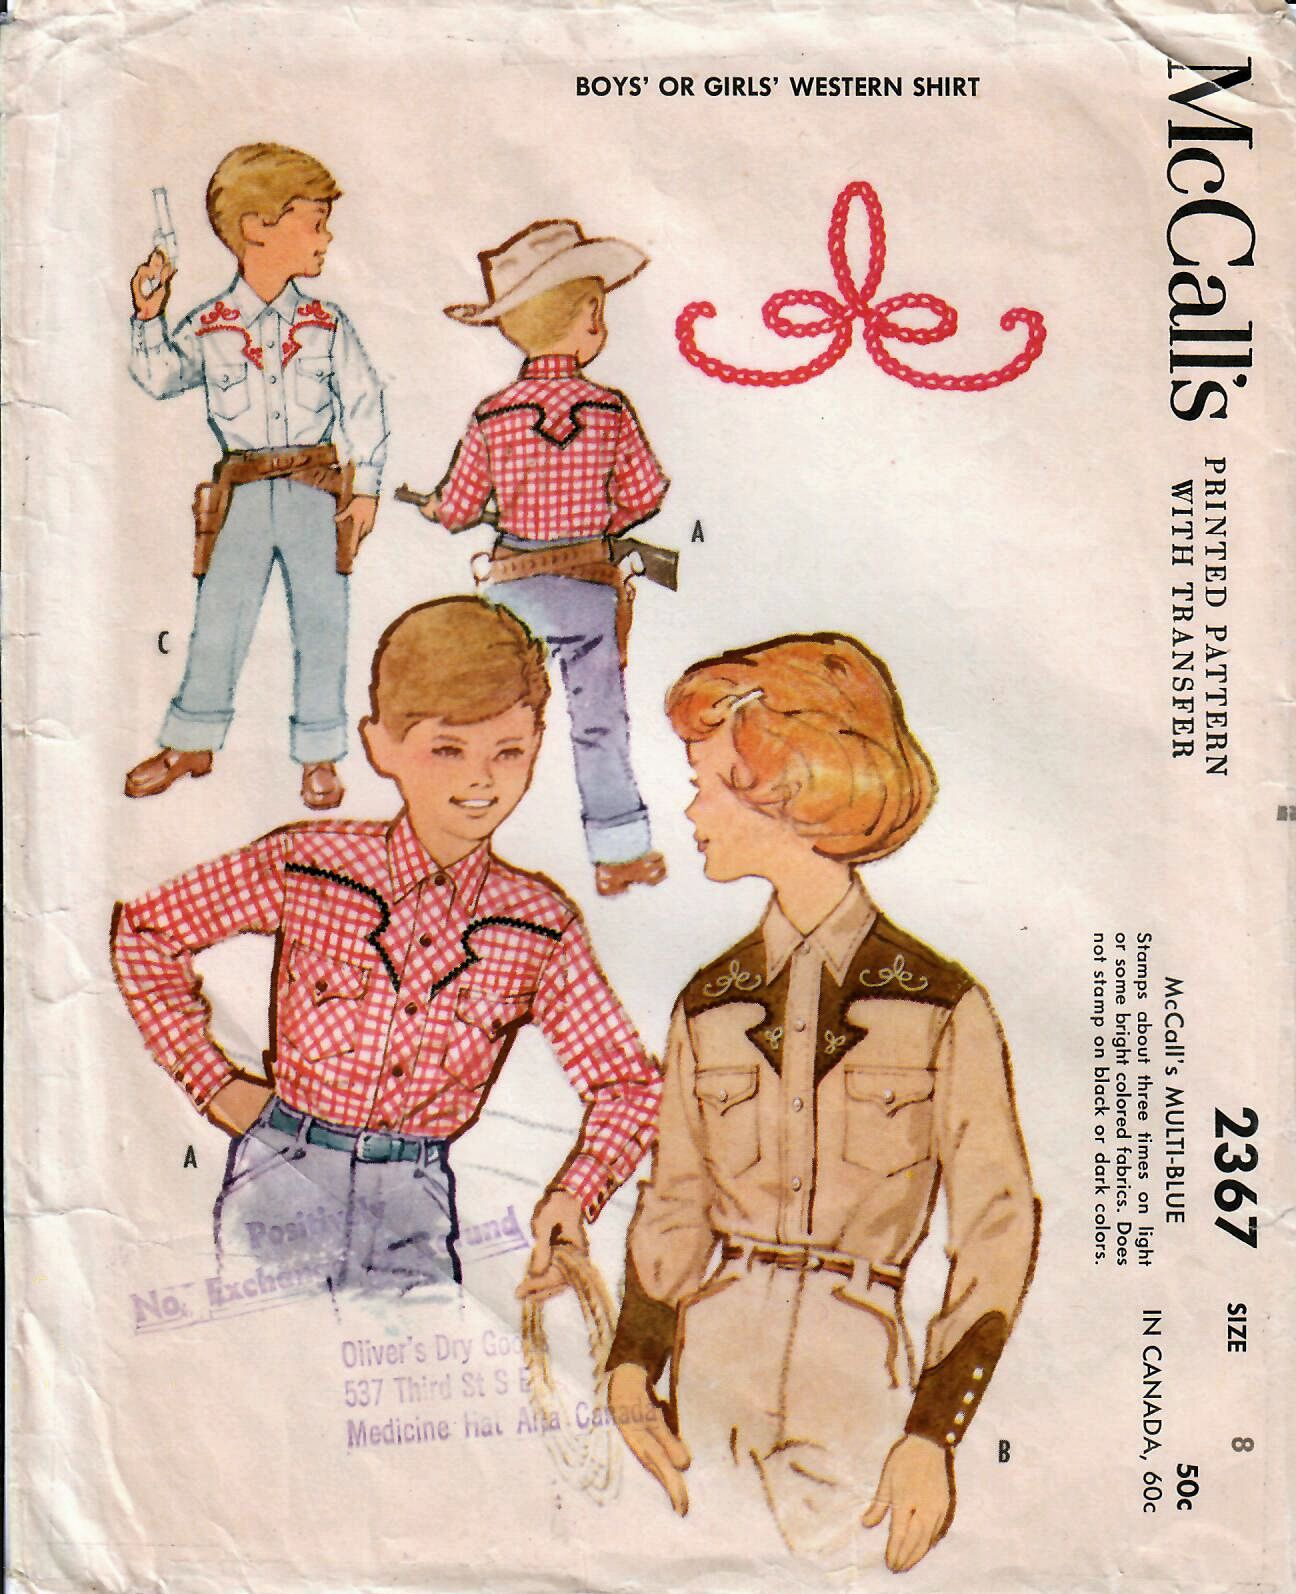 1950s mccalls 2367 vintage sewing pattern boys and girls western 1950s mccalls 2367 vintage sewing pattern boys and girls western shirt size 8 by midvalecottage on jeuxipadfo Images